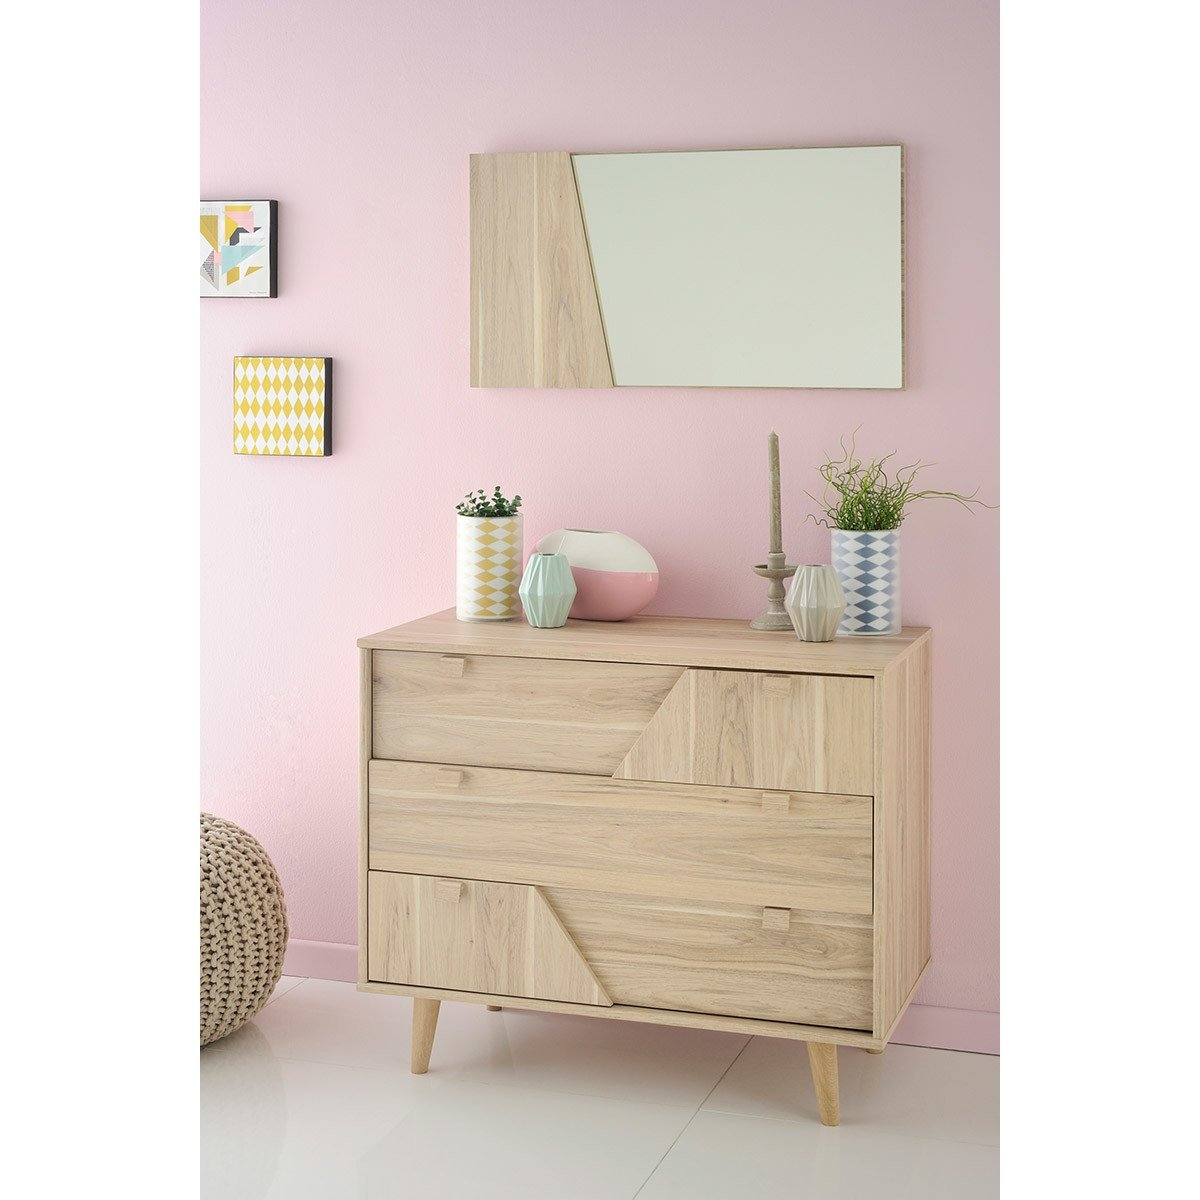 Best Parisot Swen 3 Drawer Chest With Mirror Reviews Wayfair With Pictures